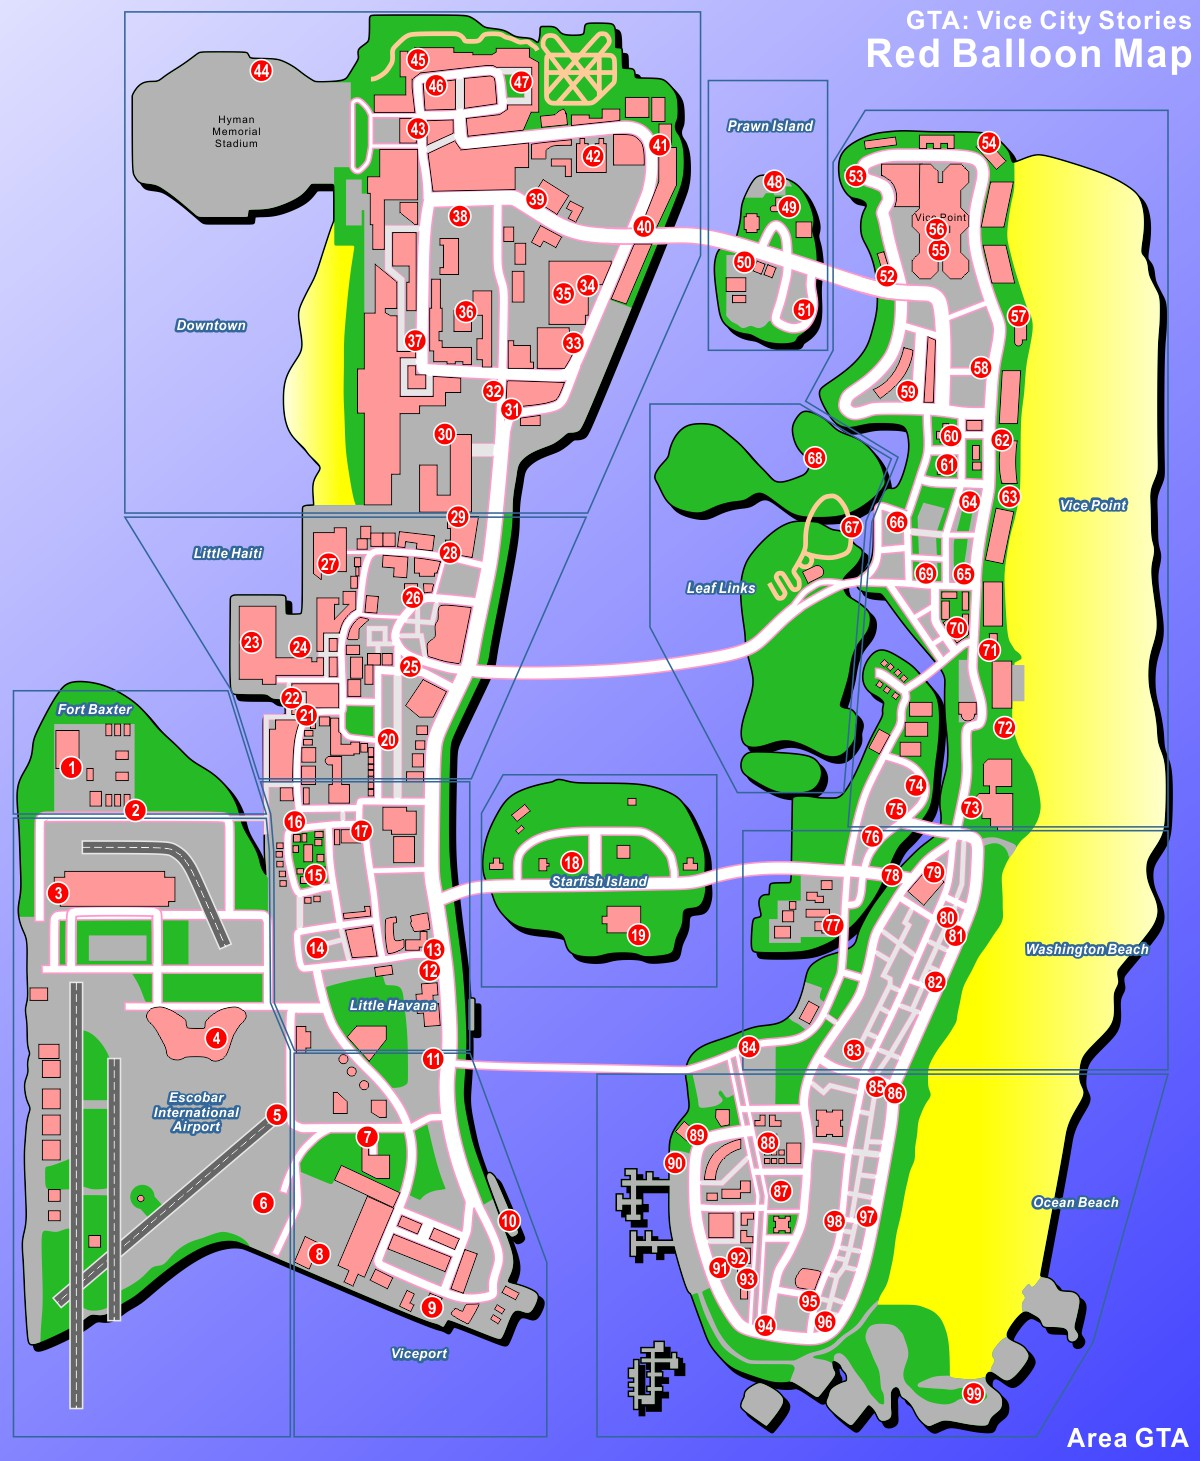 Grand theft auto vice city stories 99 red balloons map : Neo coin